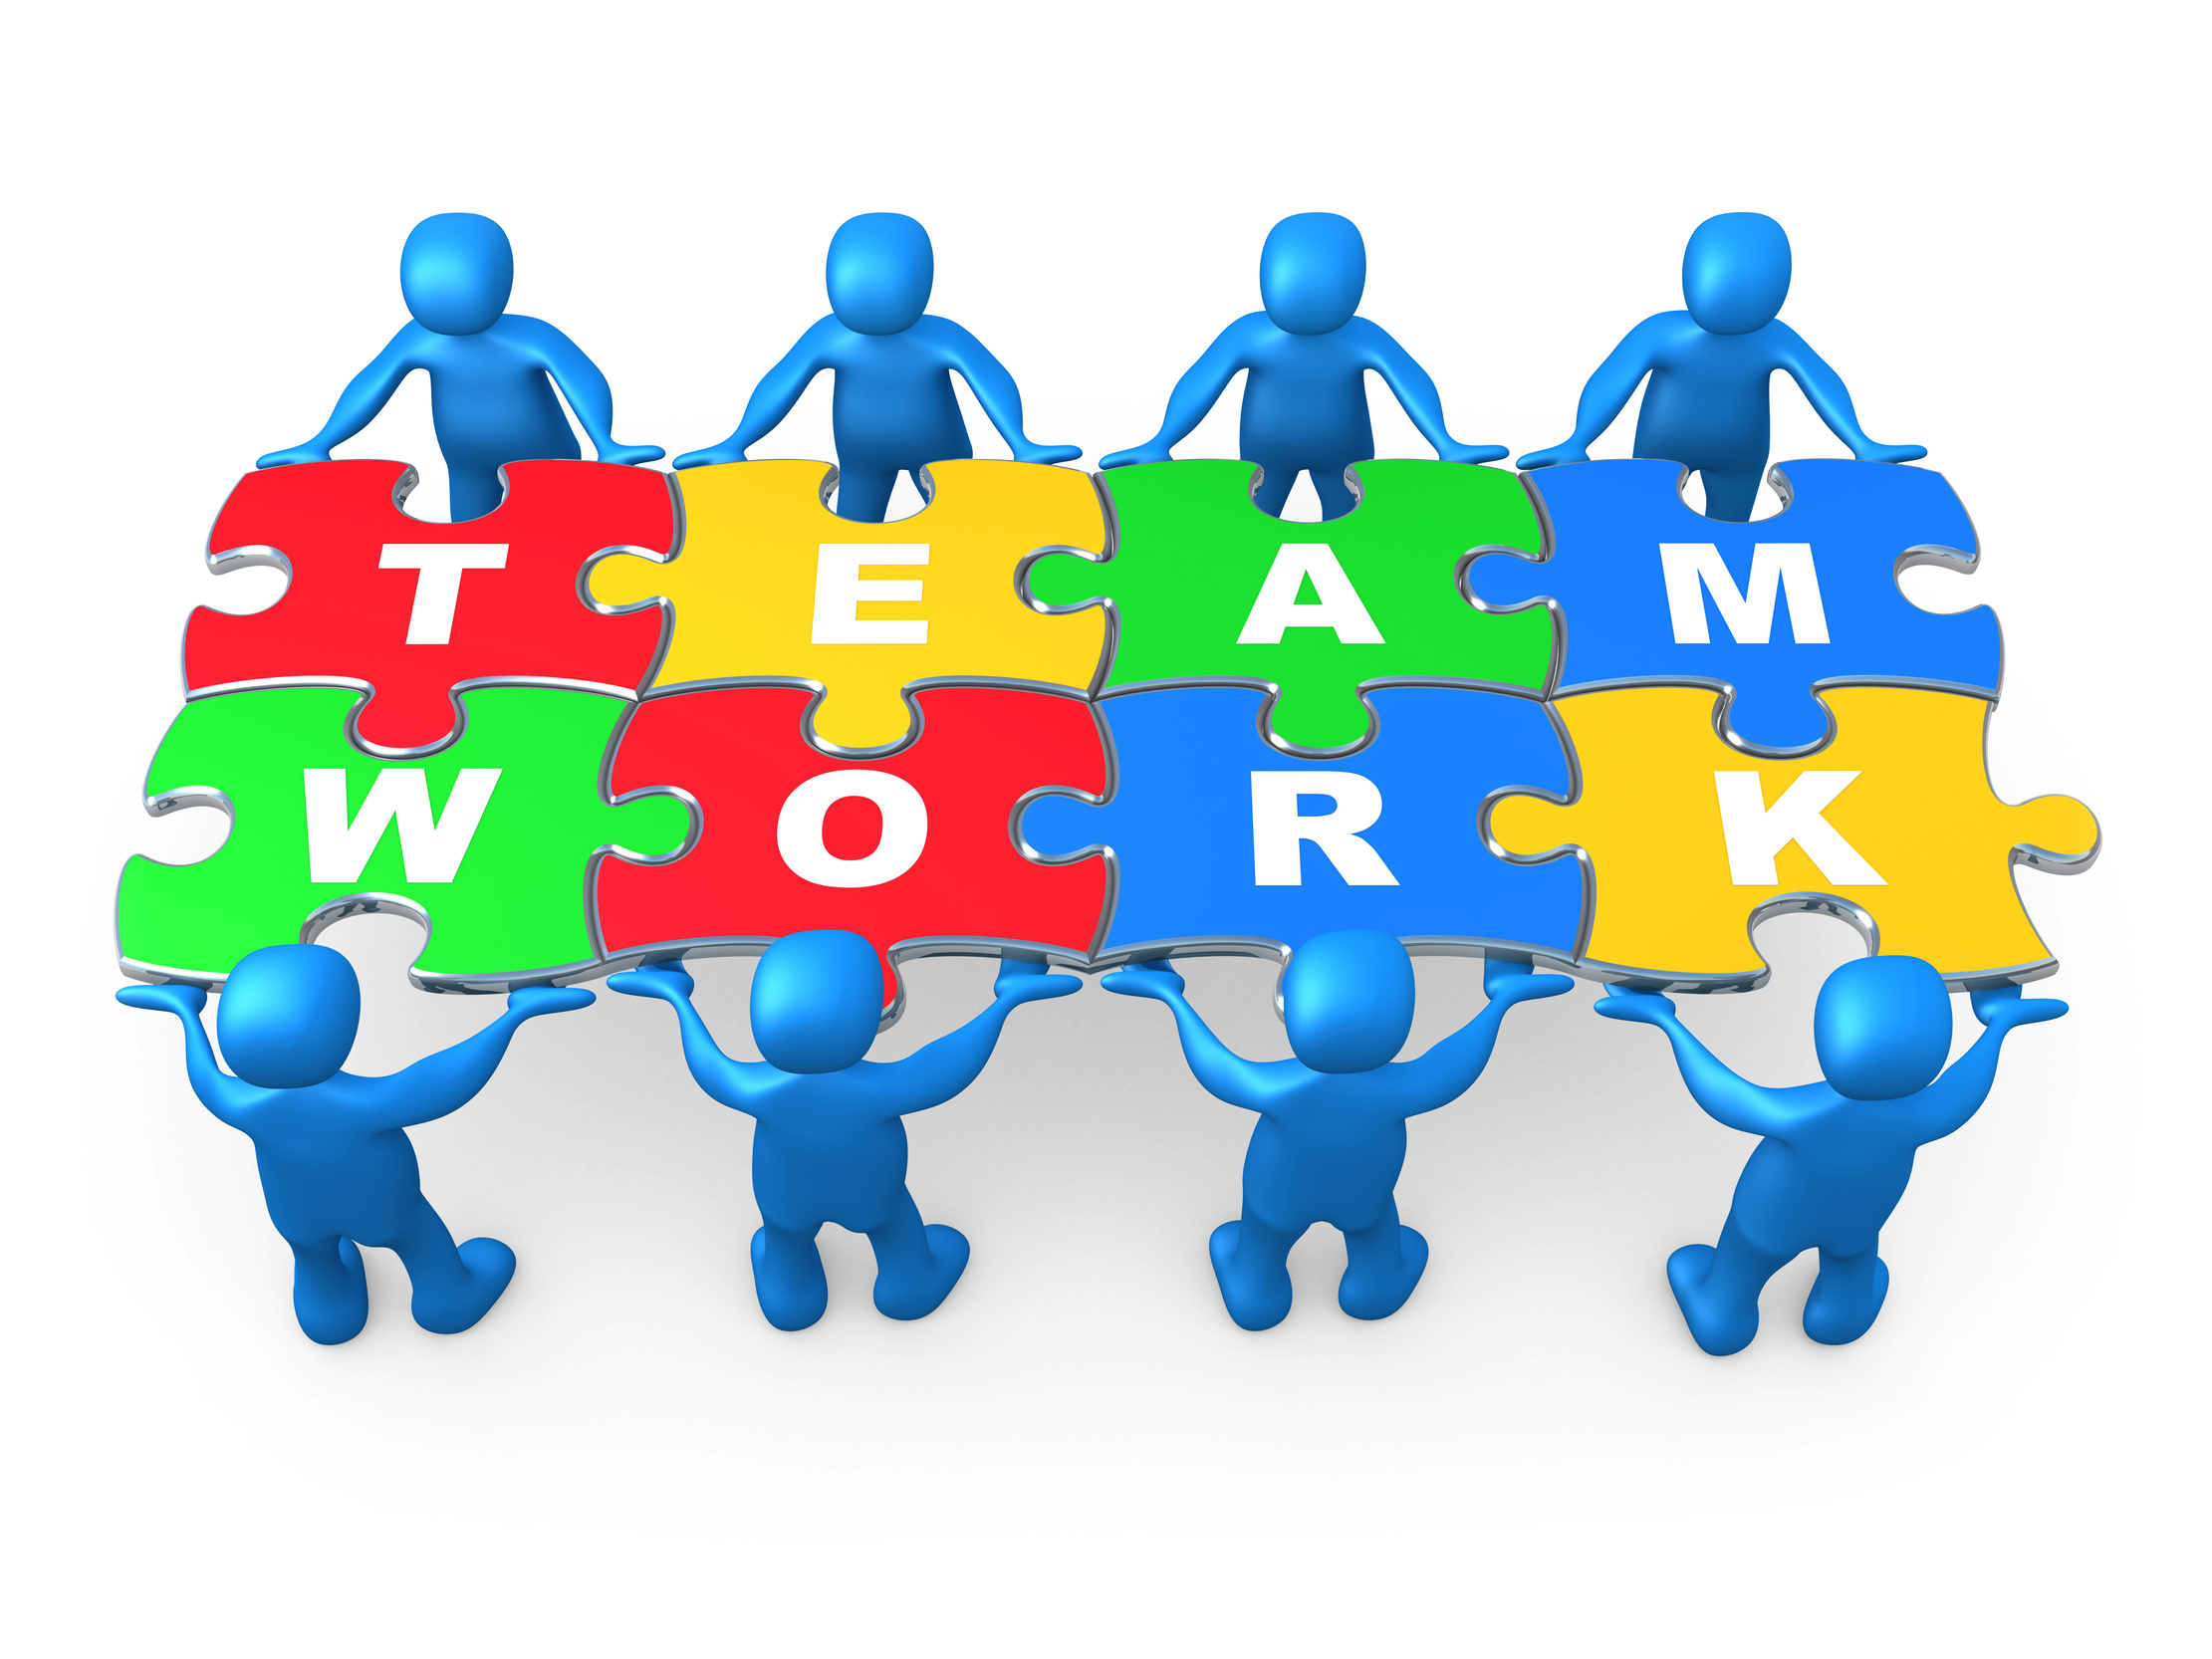 mlm software company team work